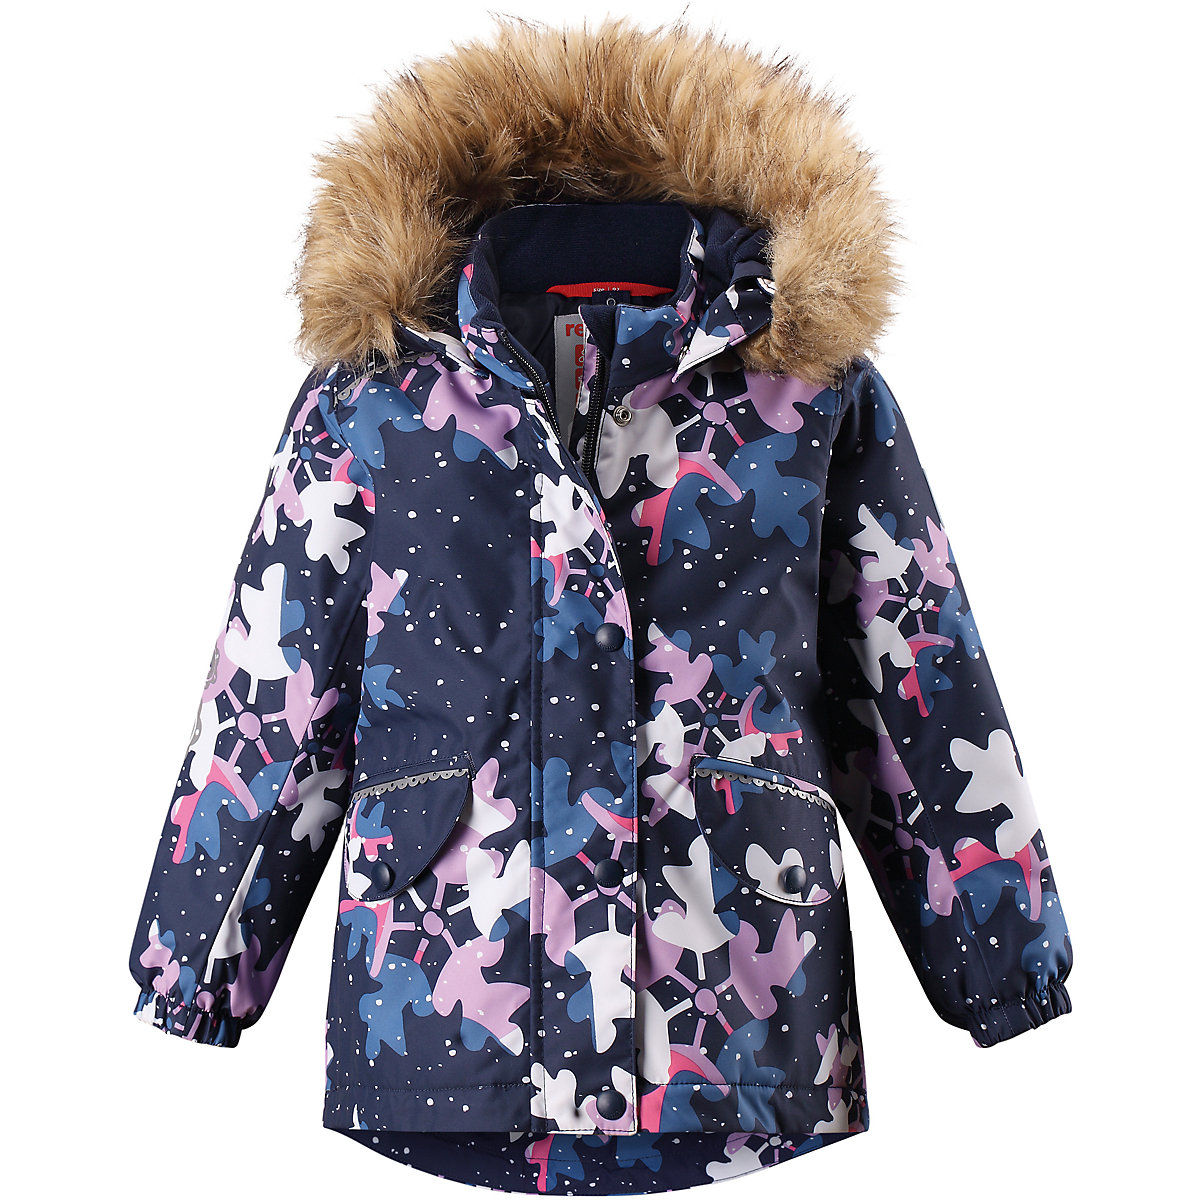 REIMA Jackets & Coats 8689427 for girls baby clothing winter warm boy girl jacket Polyester motorcycle jacket men winter motorcycle riding jacket windproof reflective motorbike clothing moto jaqueta motorcycle racing